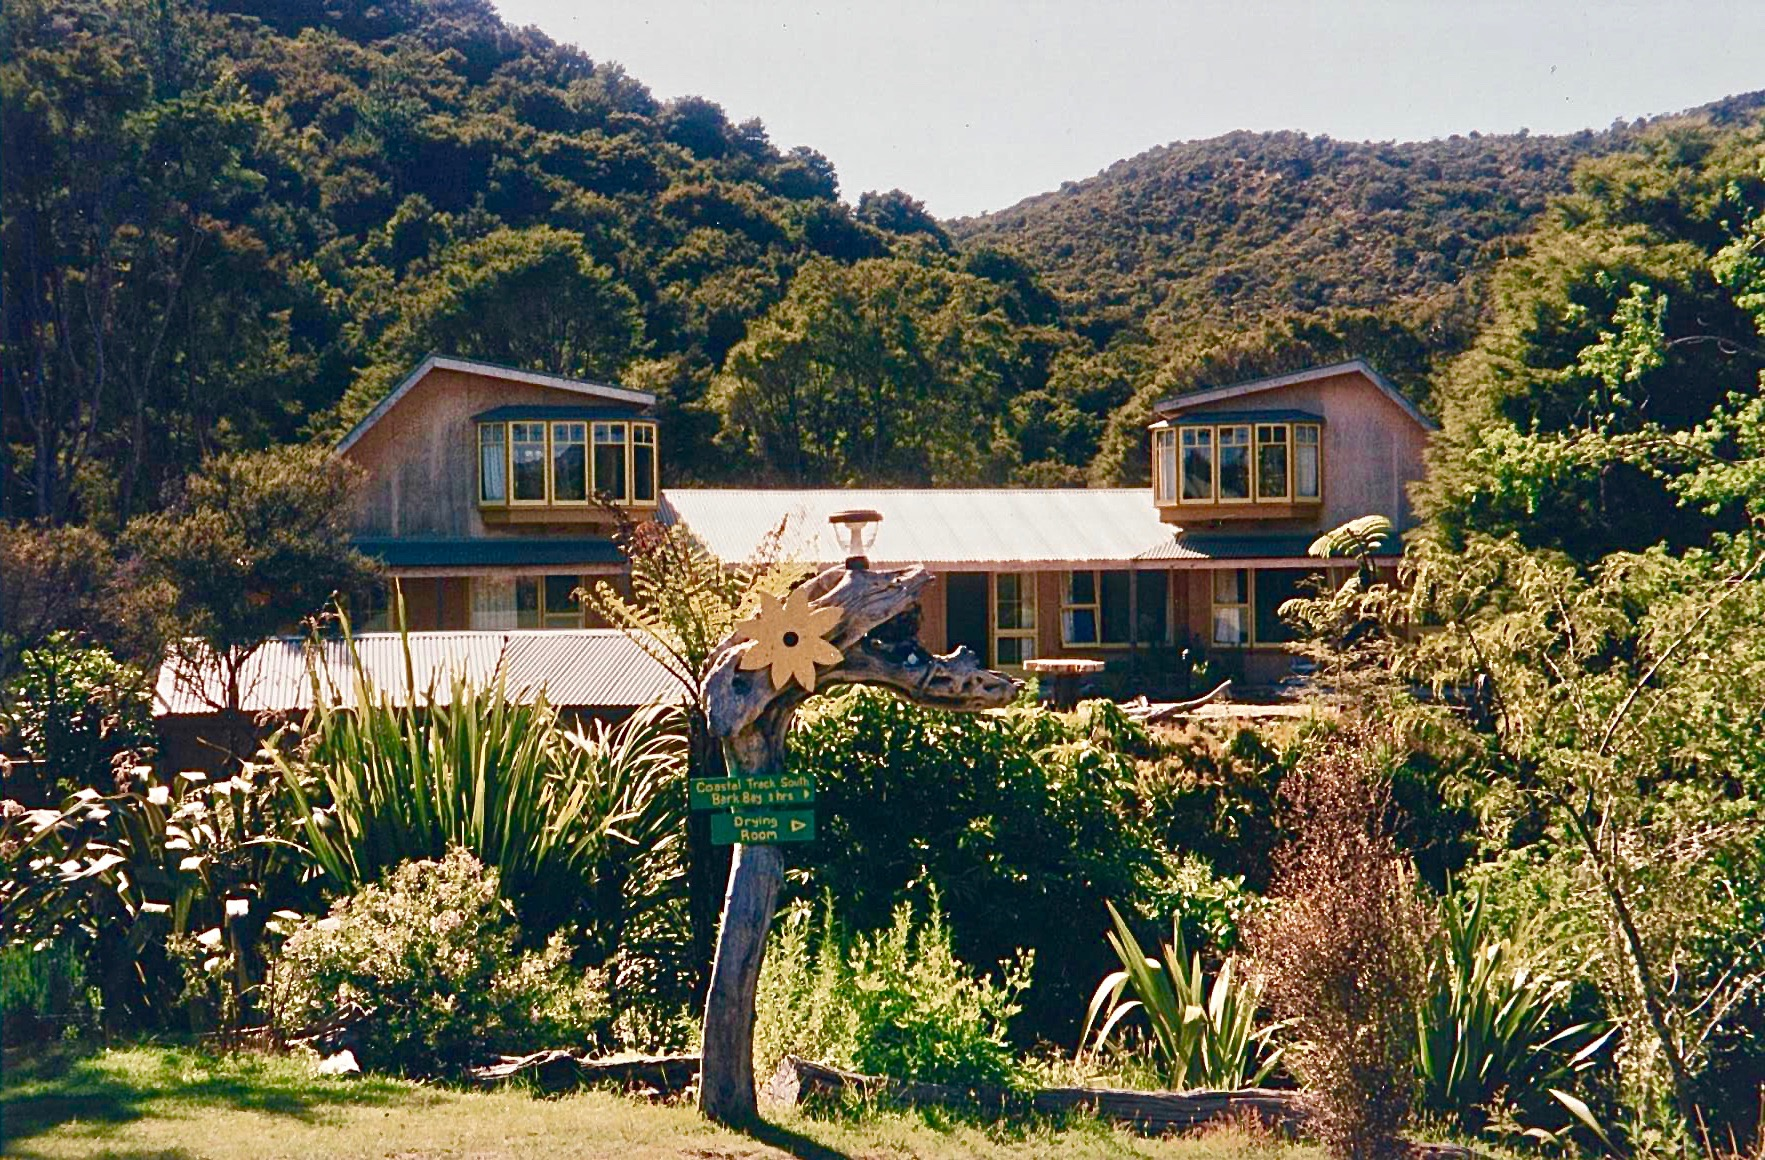 Awaroa Lodge, Abel Tasmin National Park, New Zealand